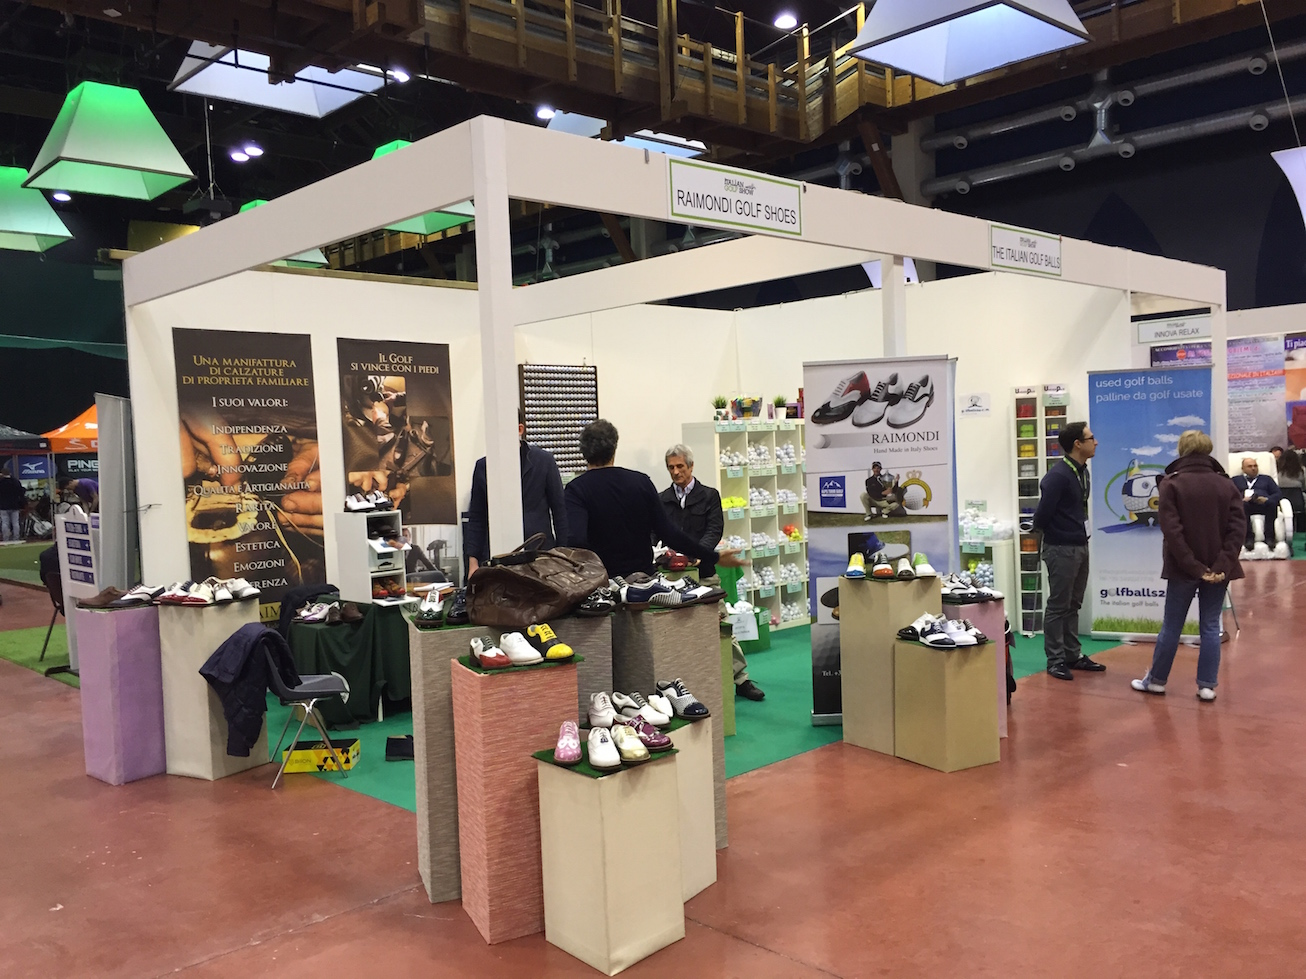 Fiera del Golf Parma 2015 le foto ed i video di Italian Golf Show e le prove dei materiali38 - Fiera del Golf Parma: le foto ed i video di Italian Golf Show